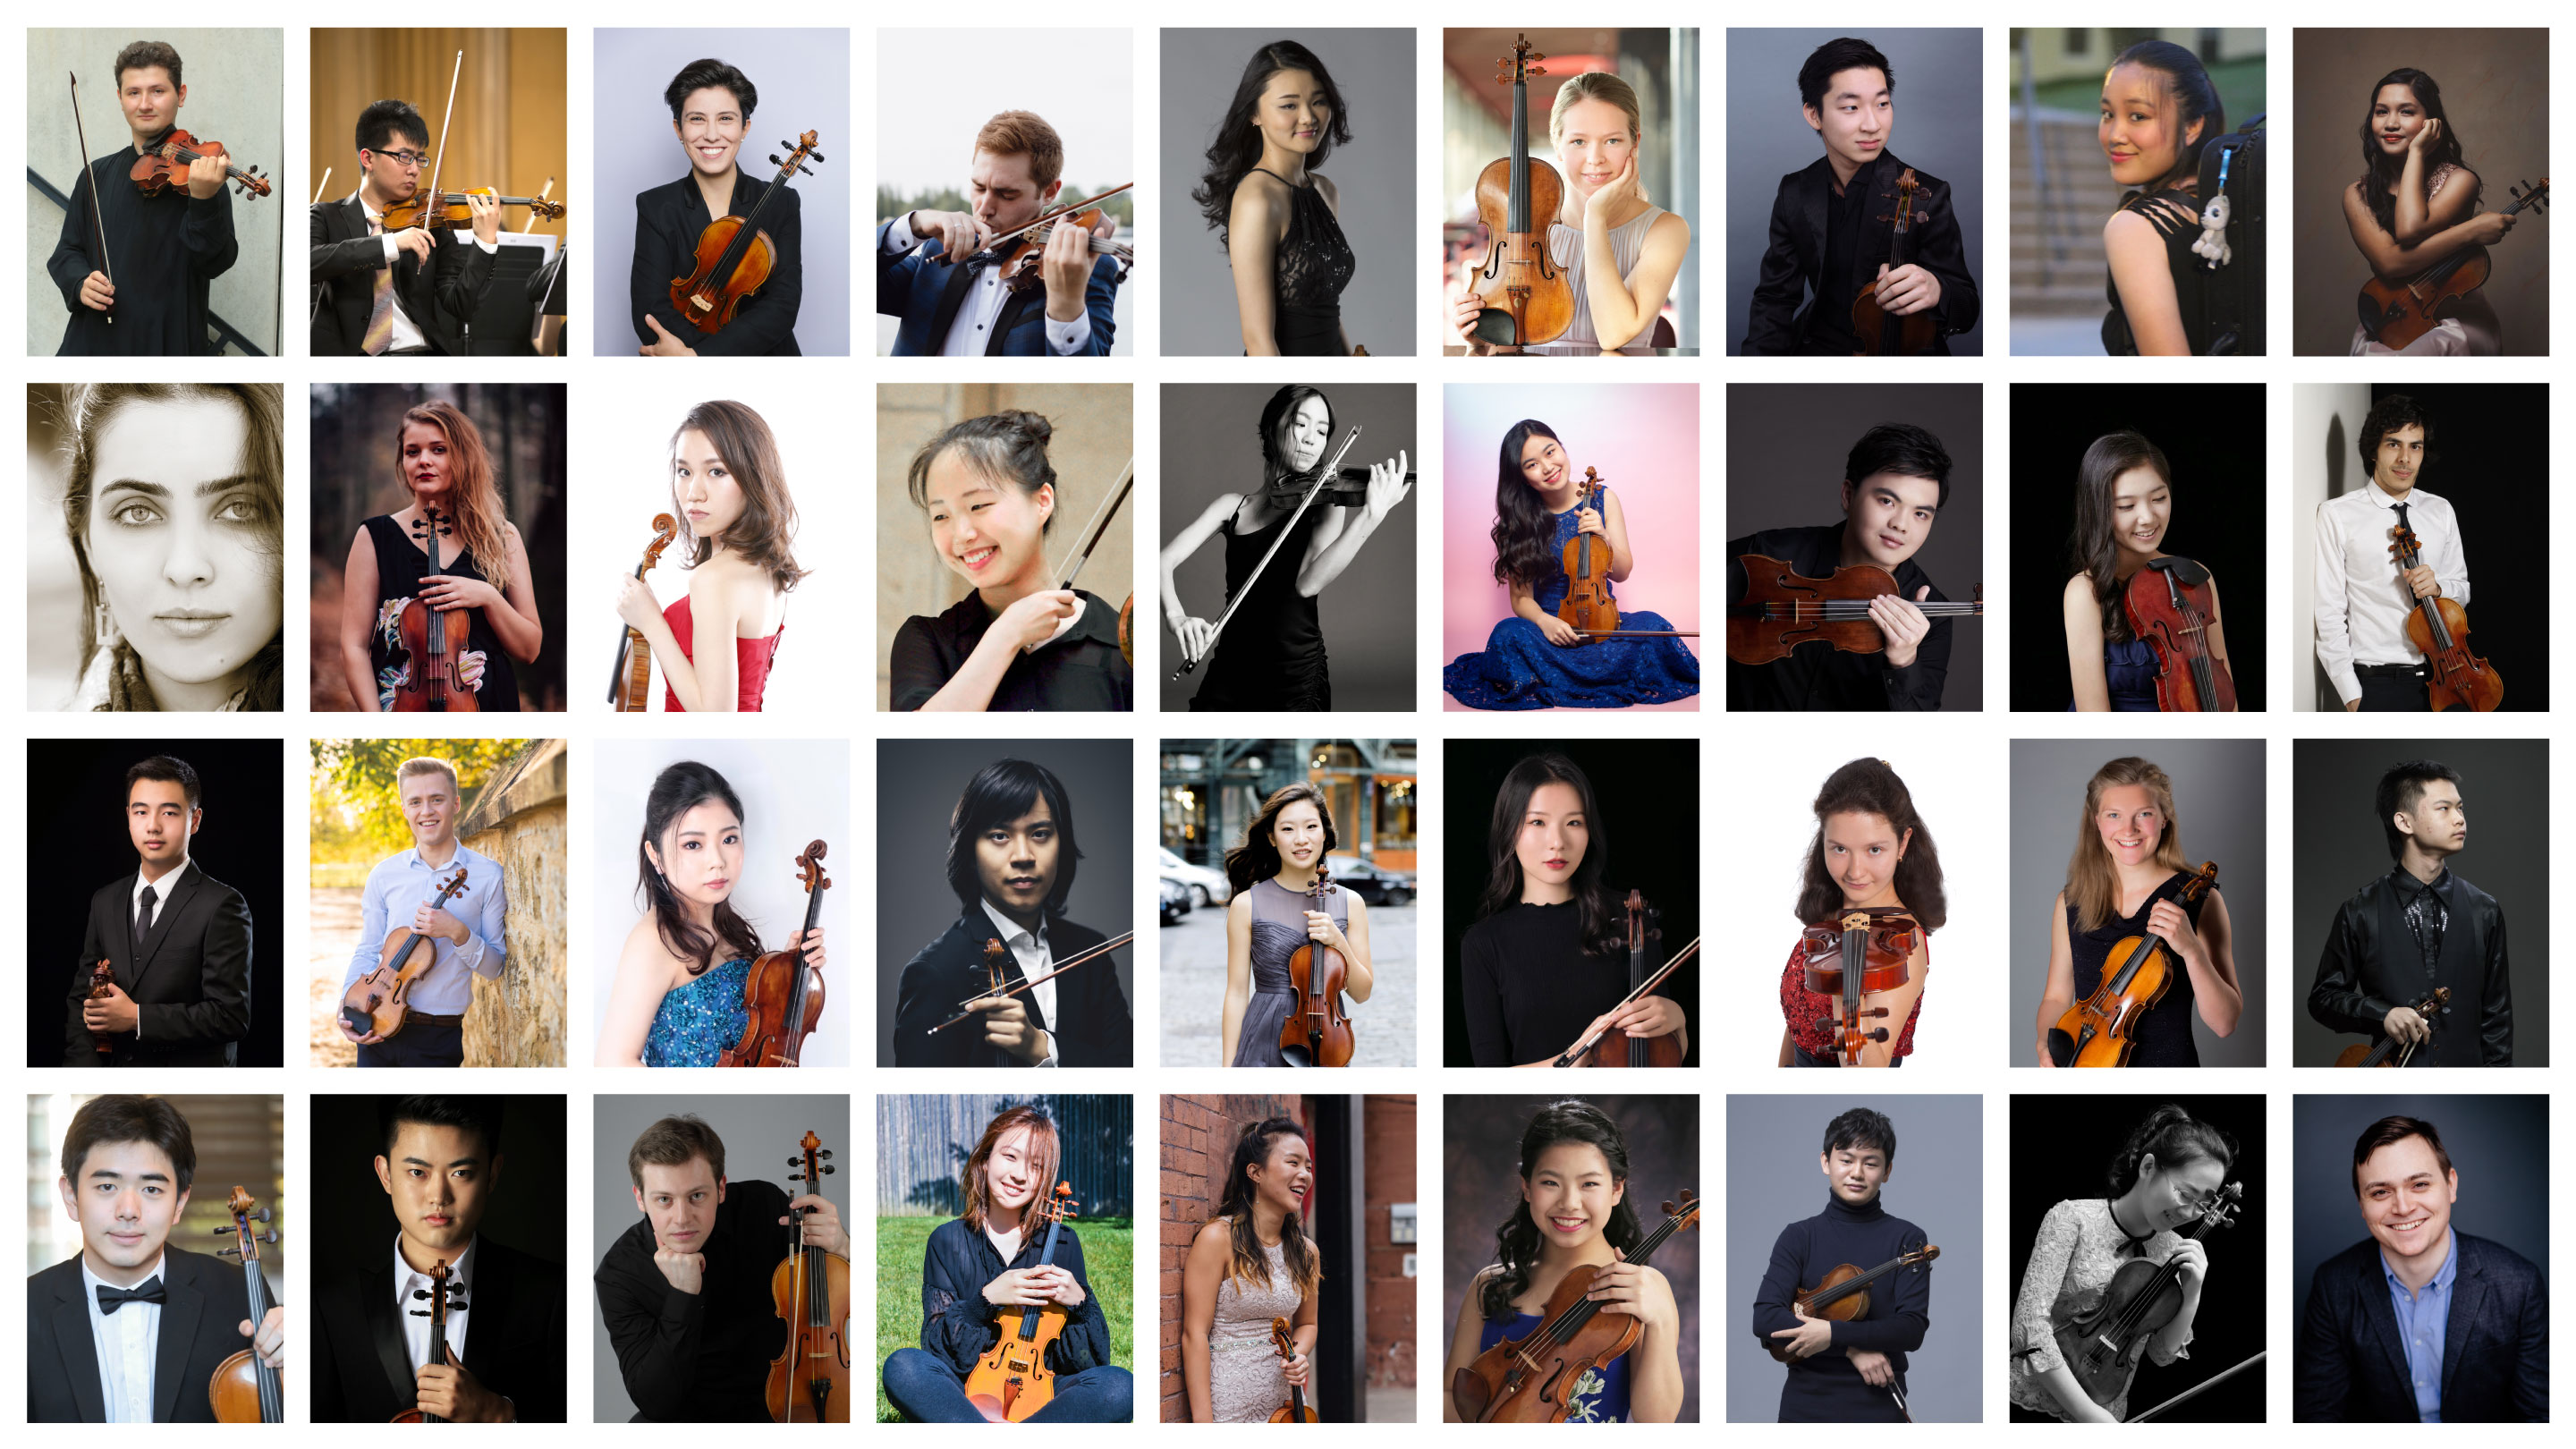 2020 Shanghai Violin Competition Names 36 Contestants and Relaunches after COVID Delay